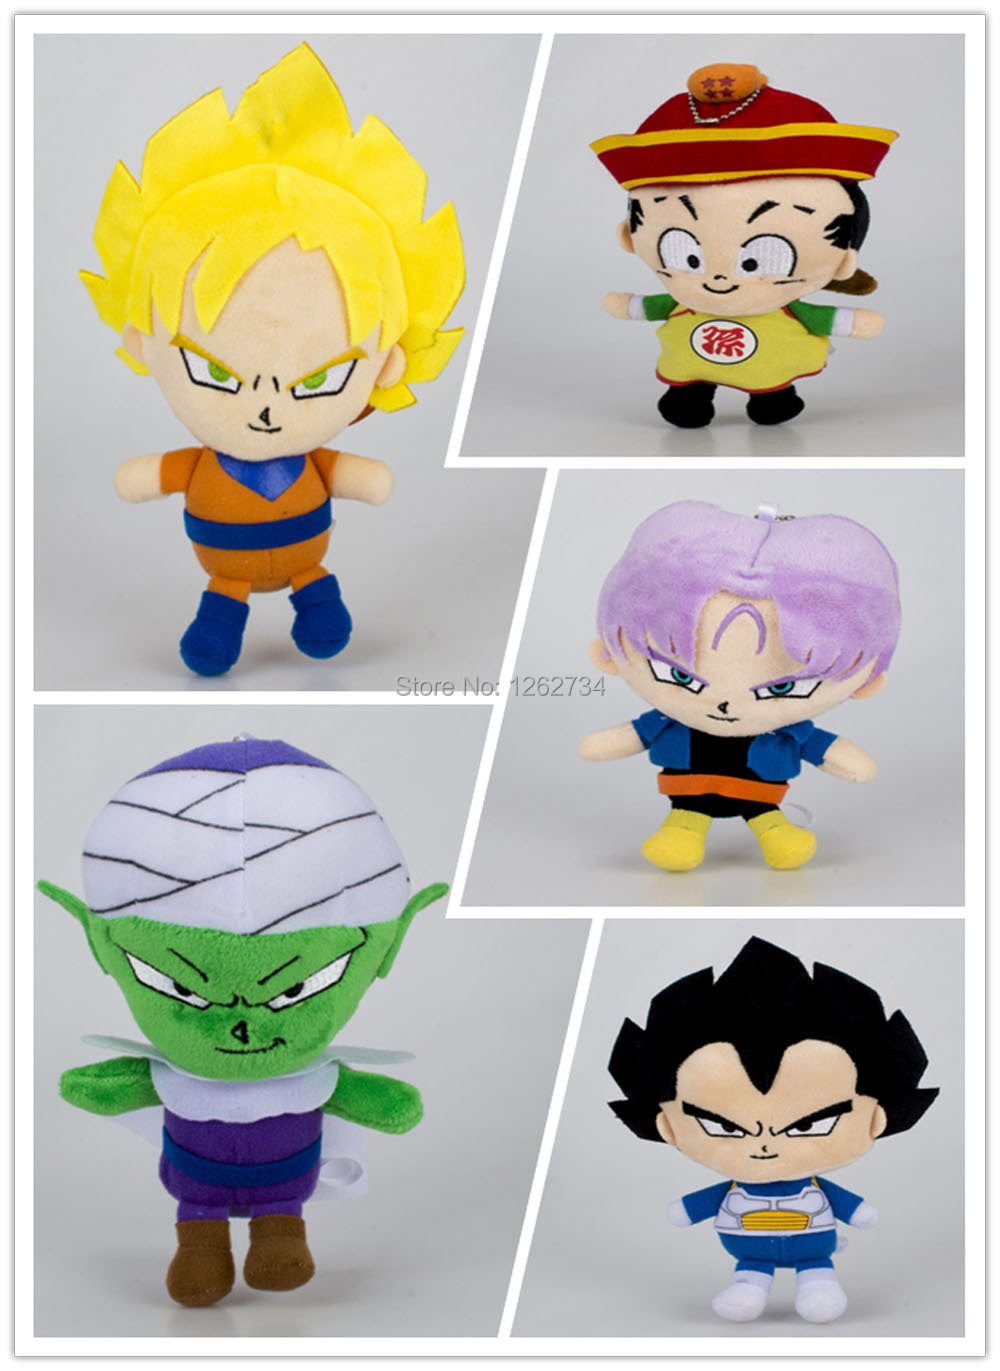 10 Lot Cute 5 Styles Dragon Ball 17 20CM Piccolo Vegeta Son Gohan Goku Trunks Plush